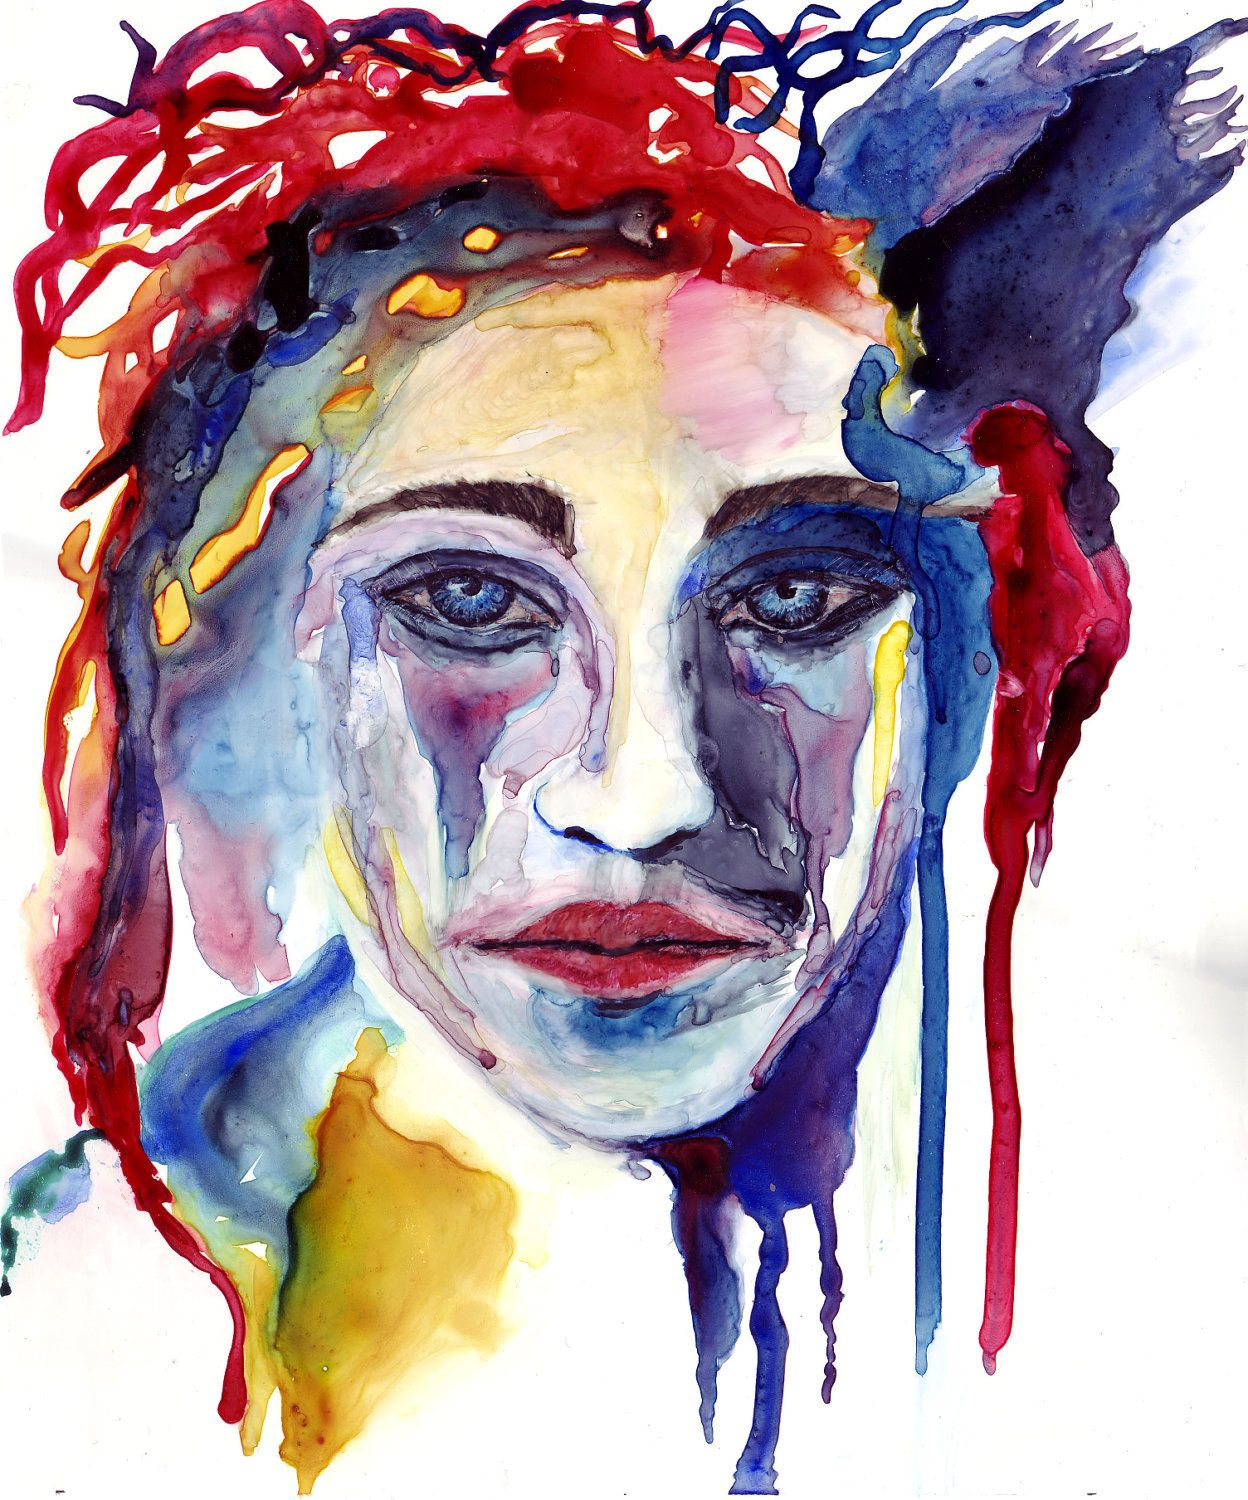 Image detail for -Abstract Portrait Original Watercolor Painting by pcoyne on Etsy